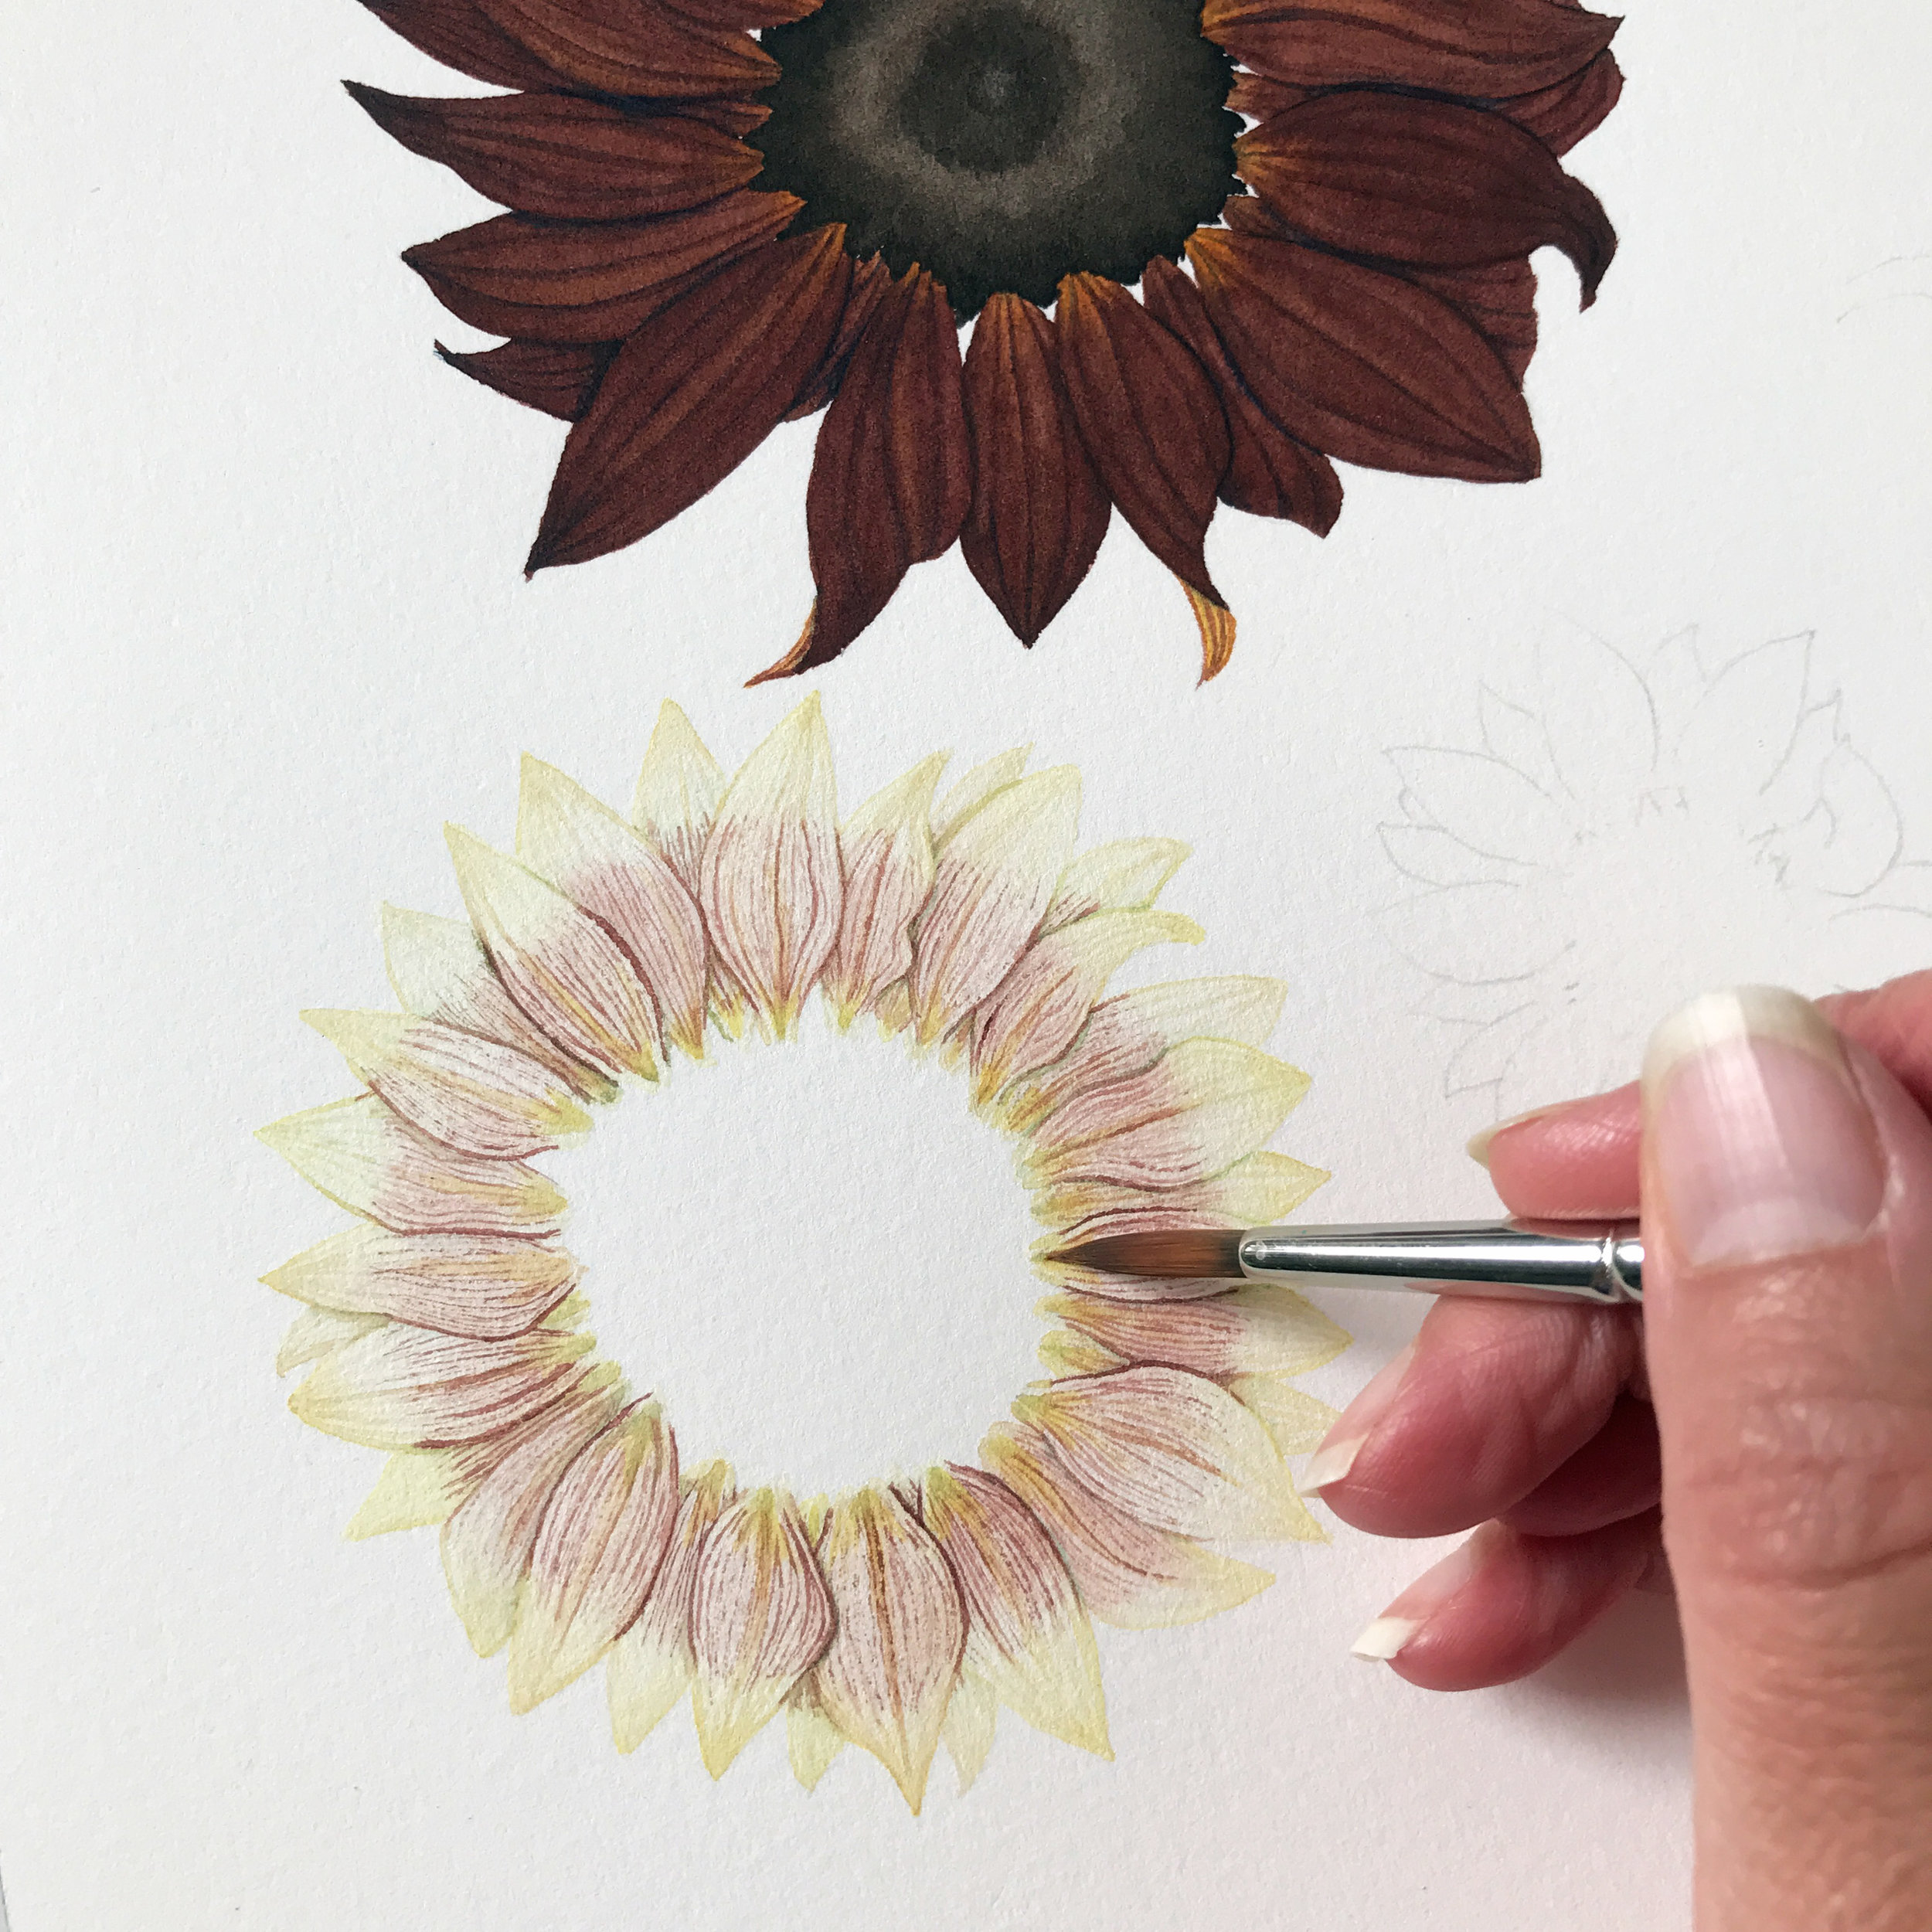 I Paint One Flower at a Time, One Petal at a Time, Finishing Each with Fine Details